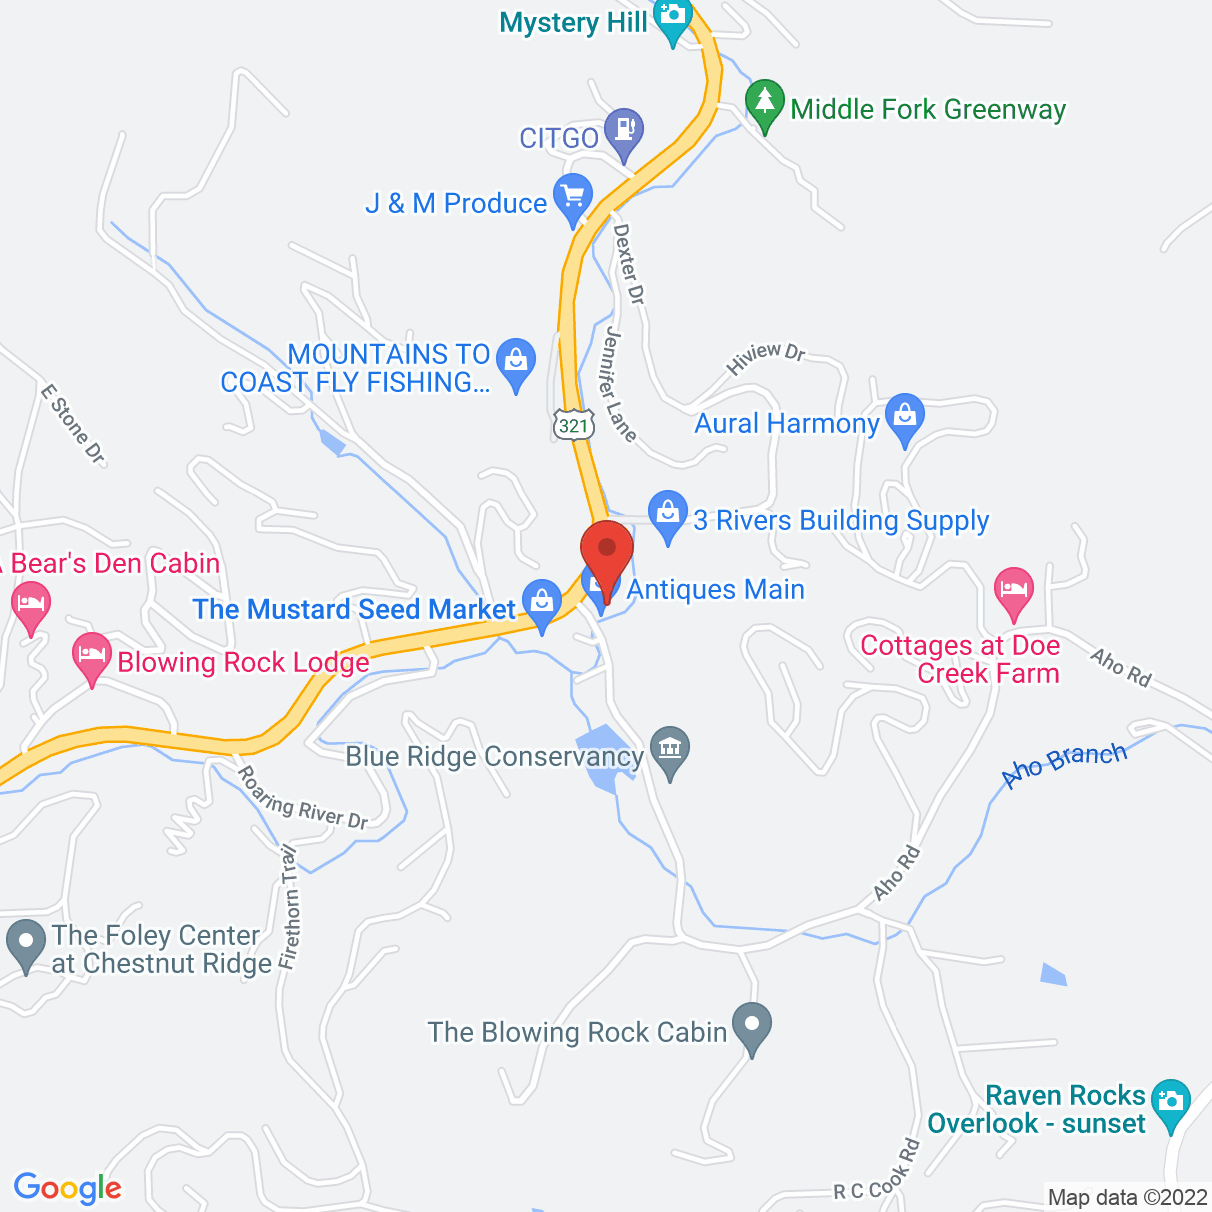 109 Aho Rd., Suite 3, Blowing Rock, NC United States 28605